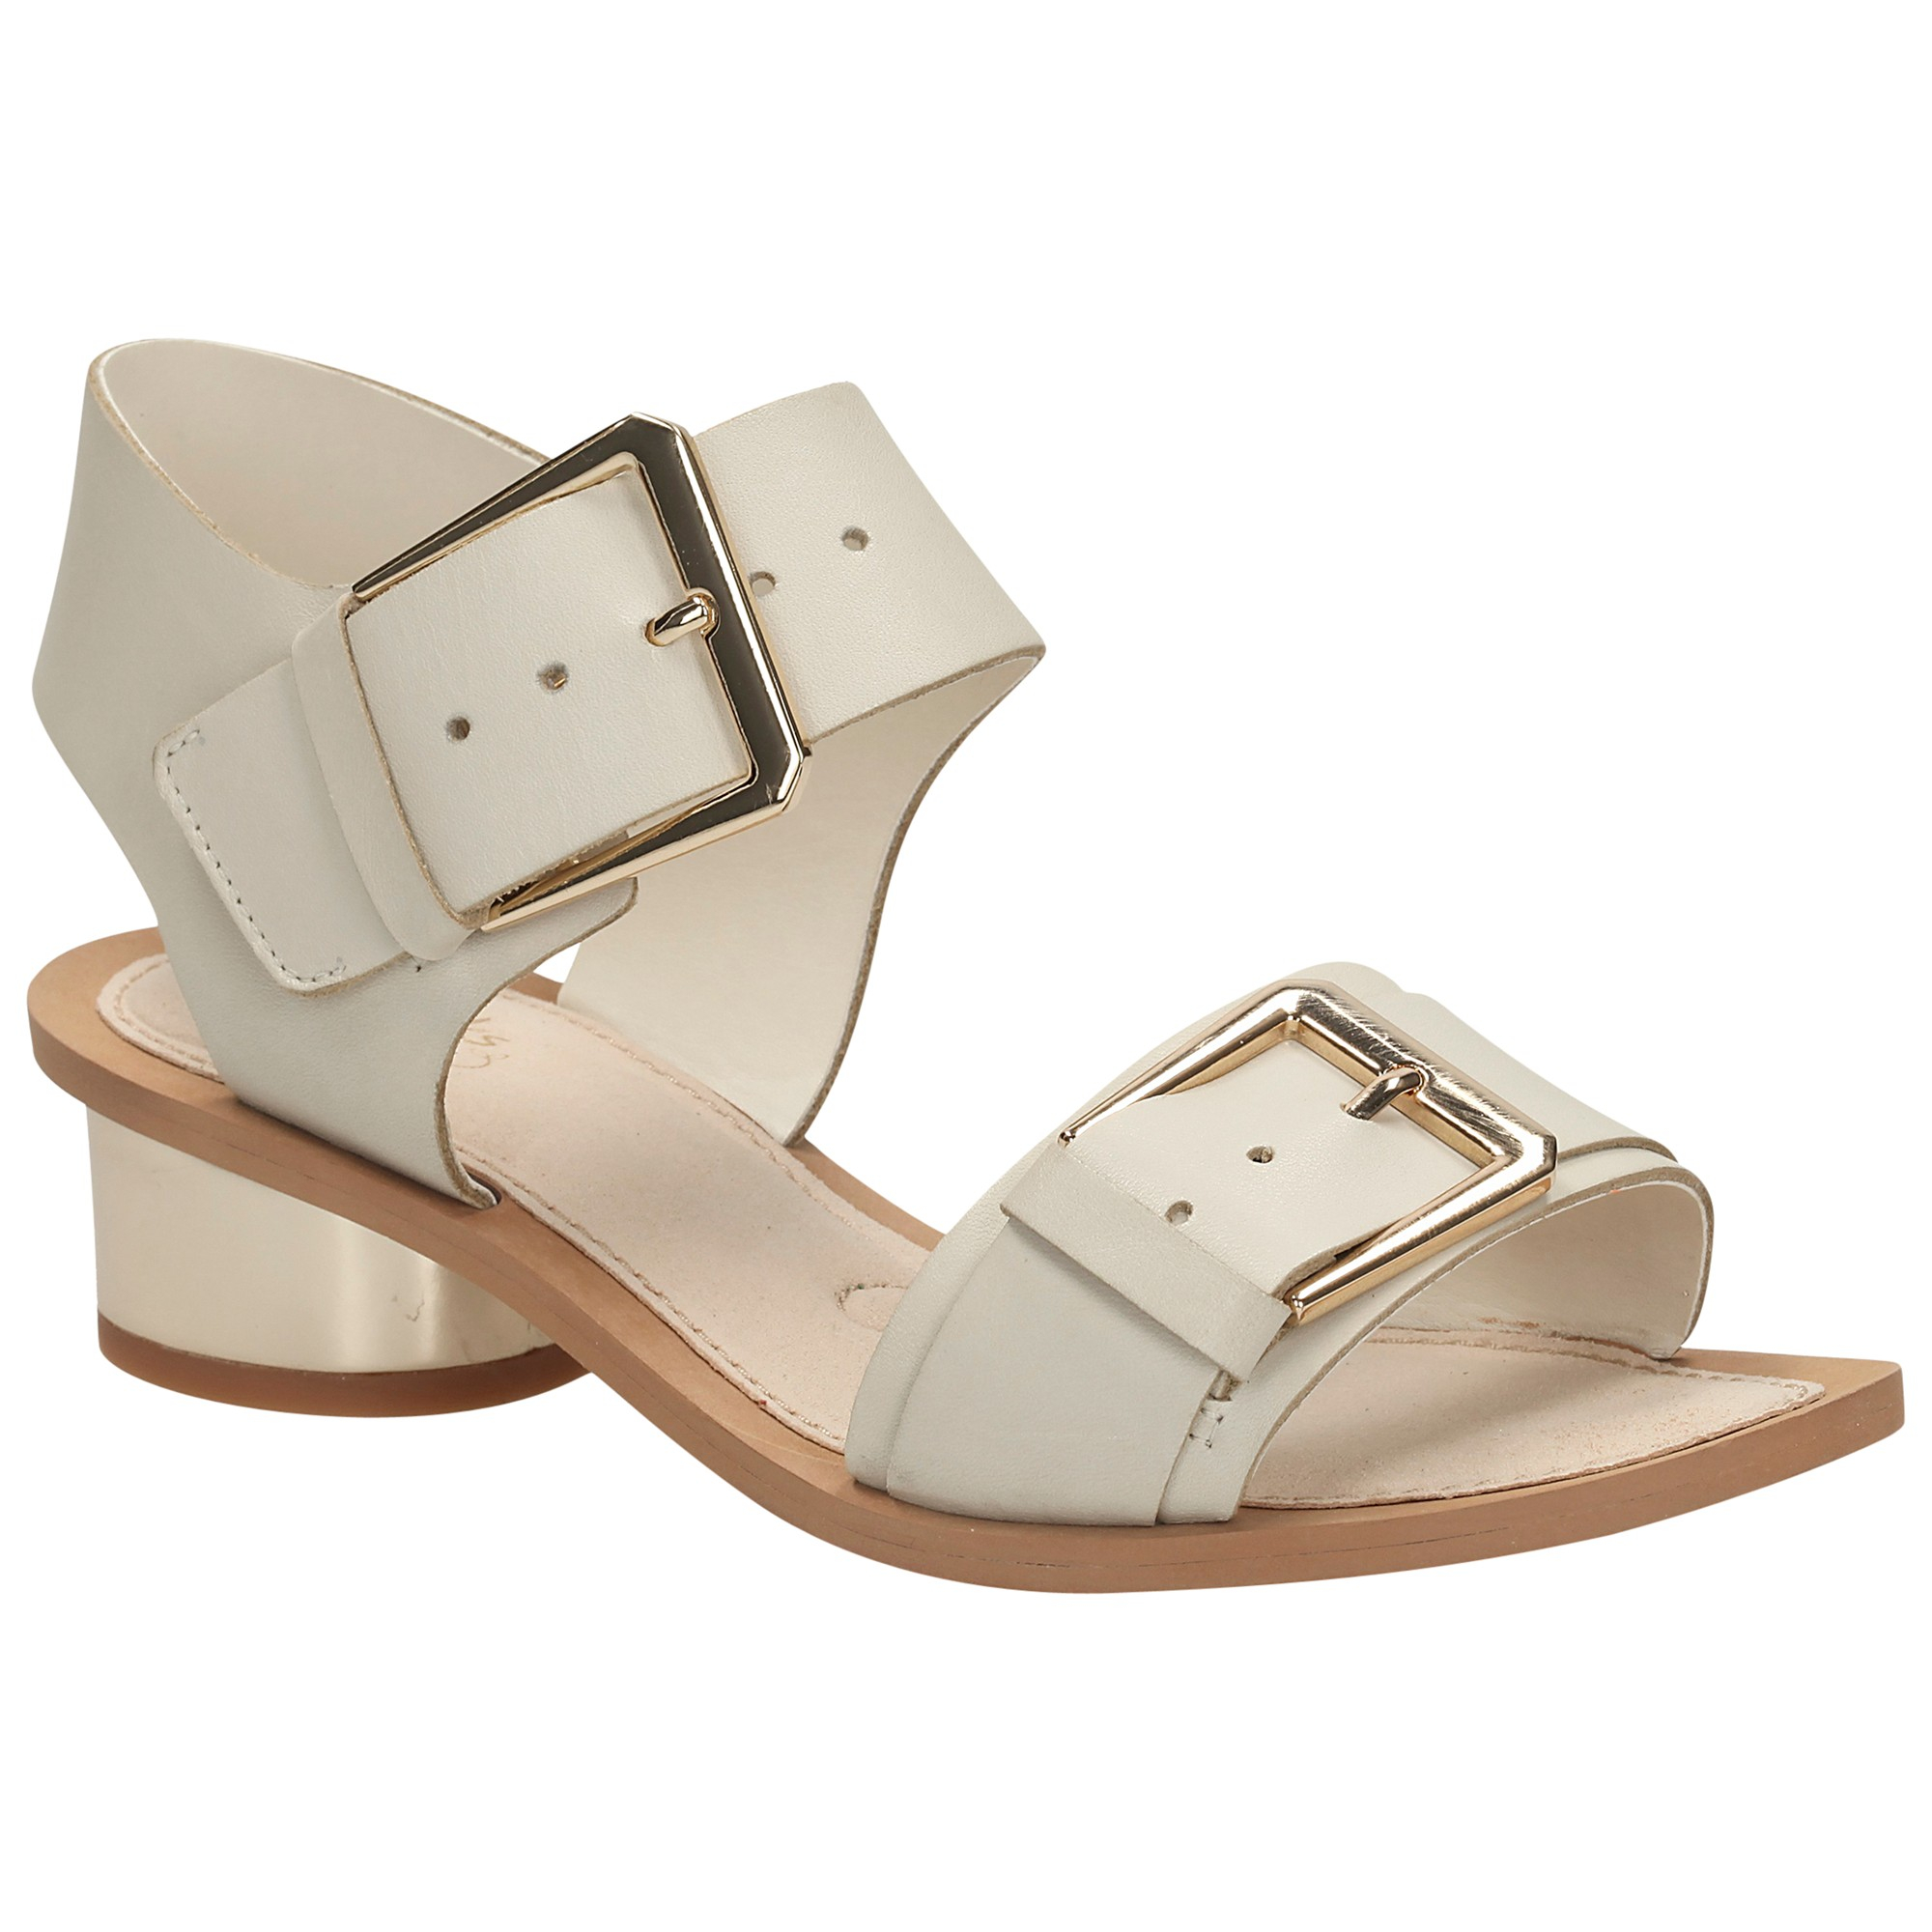 6faa4301f5d6a Clarks Sandcastle Art Leather Sandals in Brown - Lyst